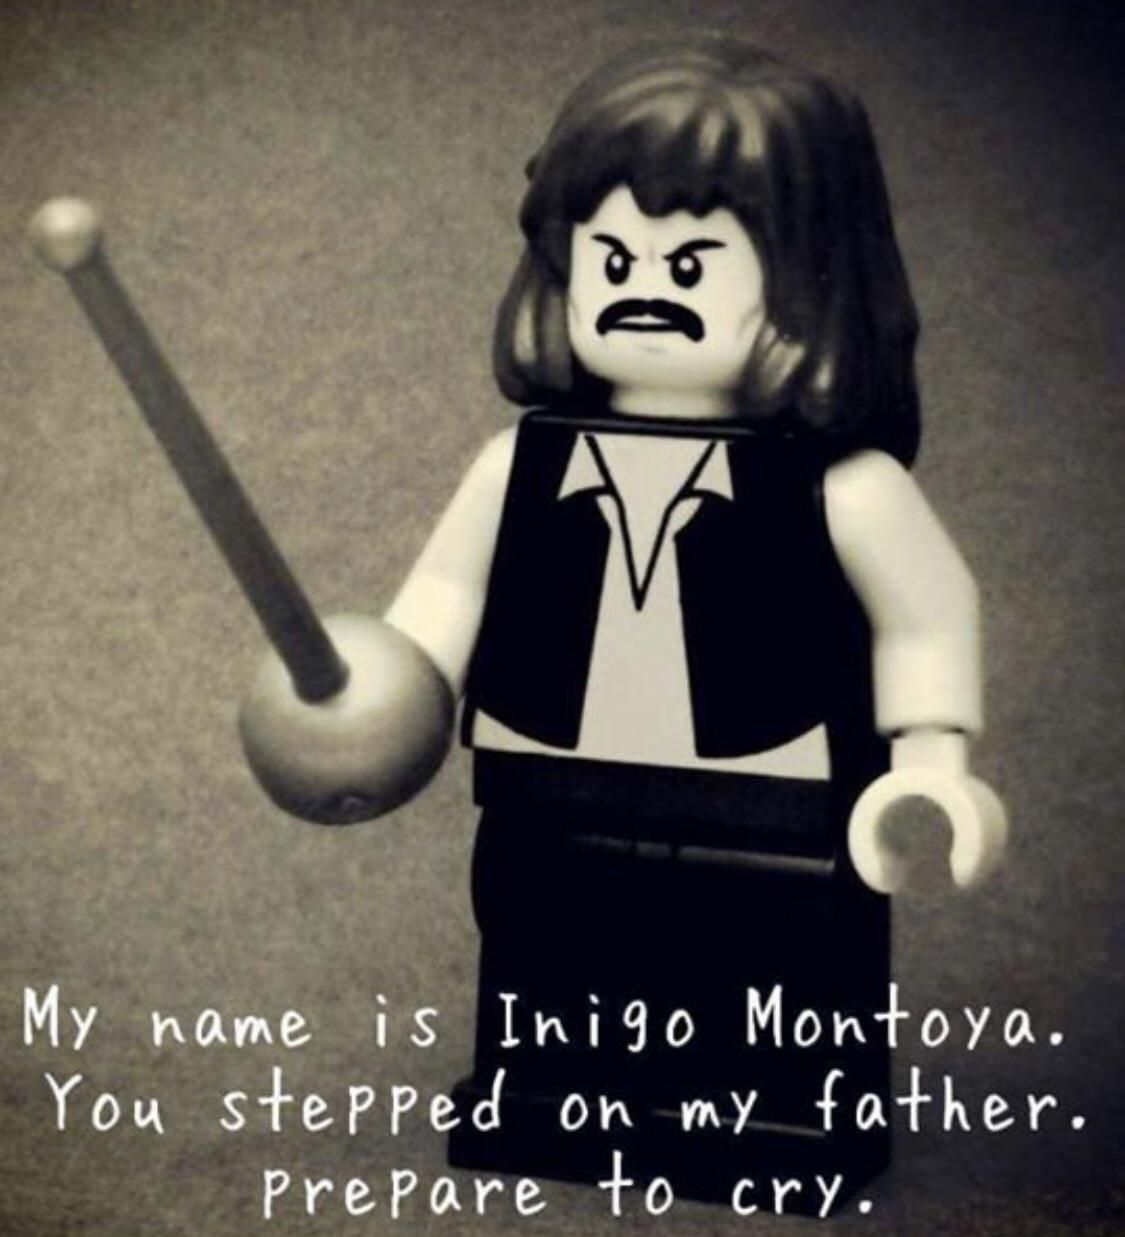 He'll never lego of his mission